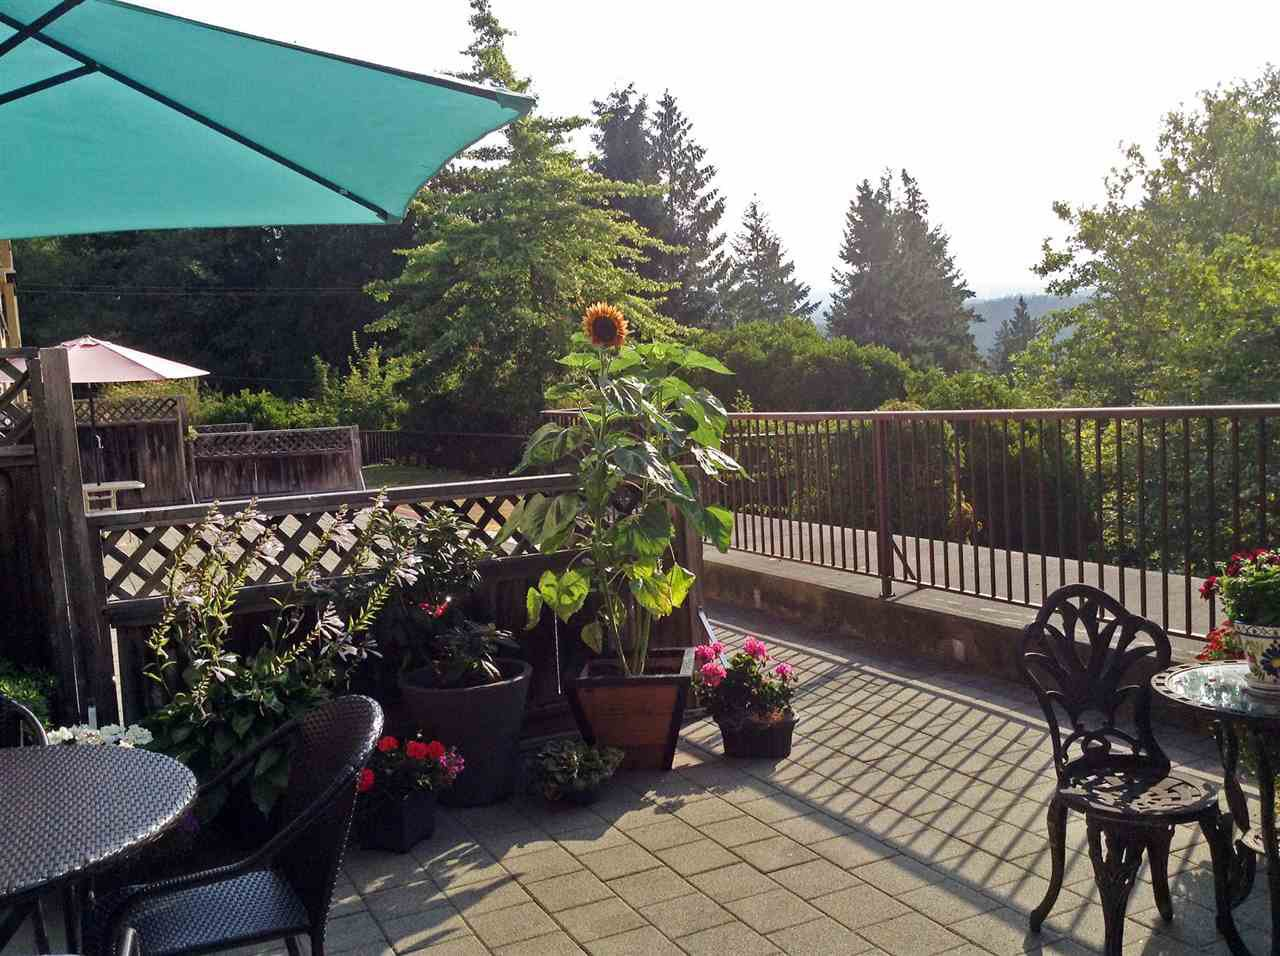 Photo 14: Photos: 106 5855 COWRIE Street in Sechelt: Sechelt District Condo for sale (Sunshine Coast)  : MLS®# R2441835